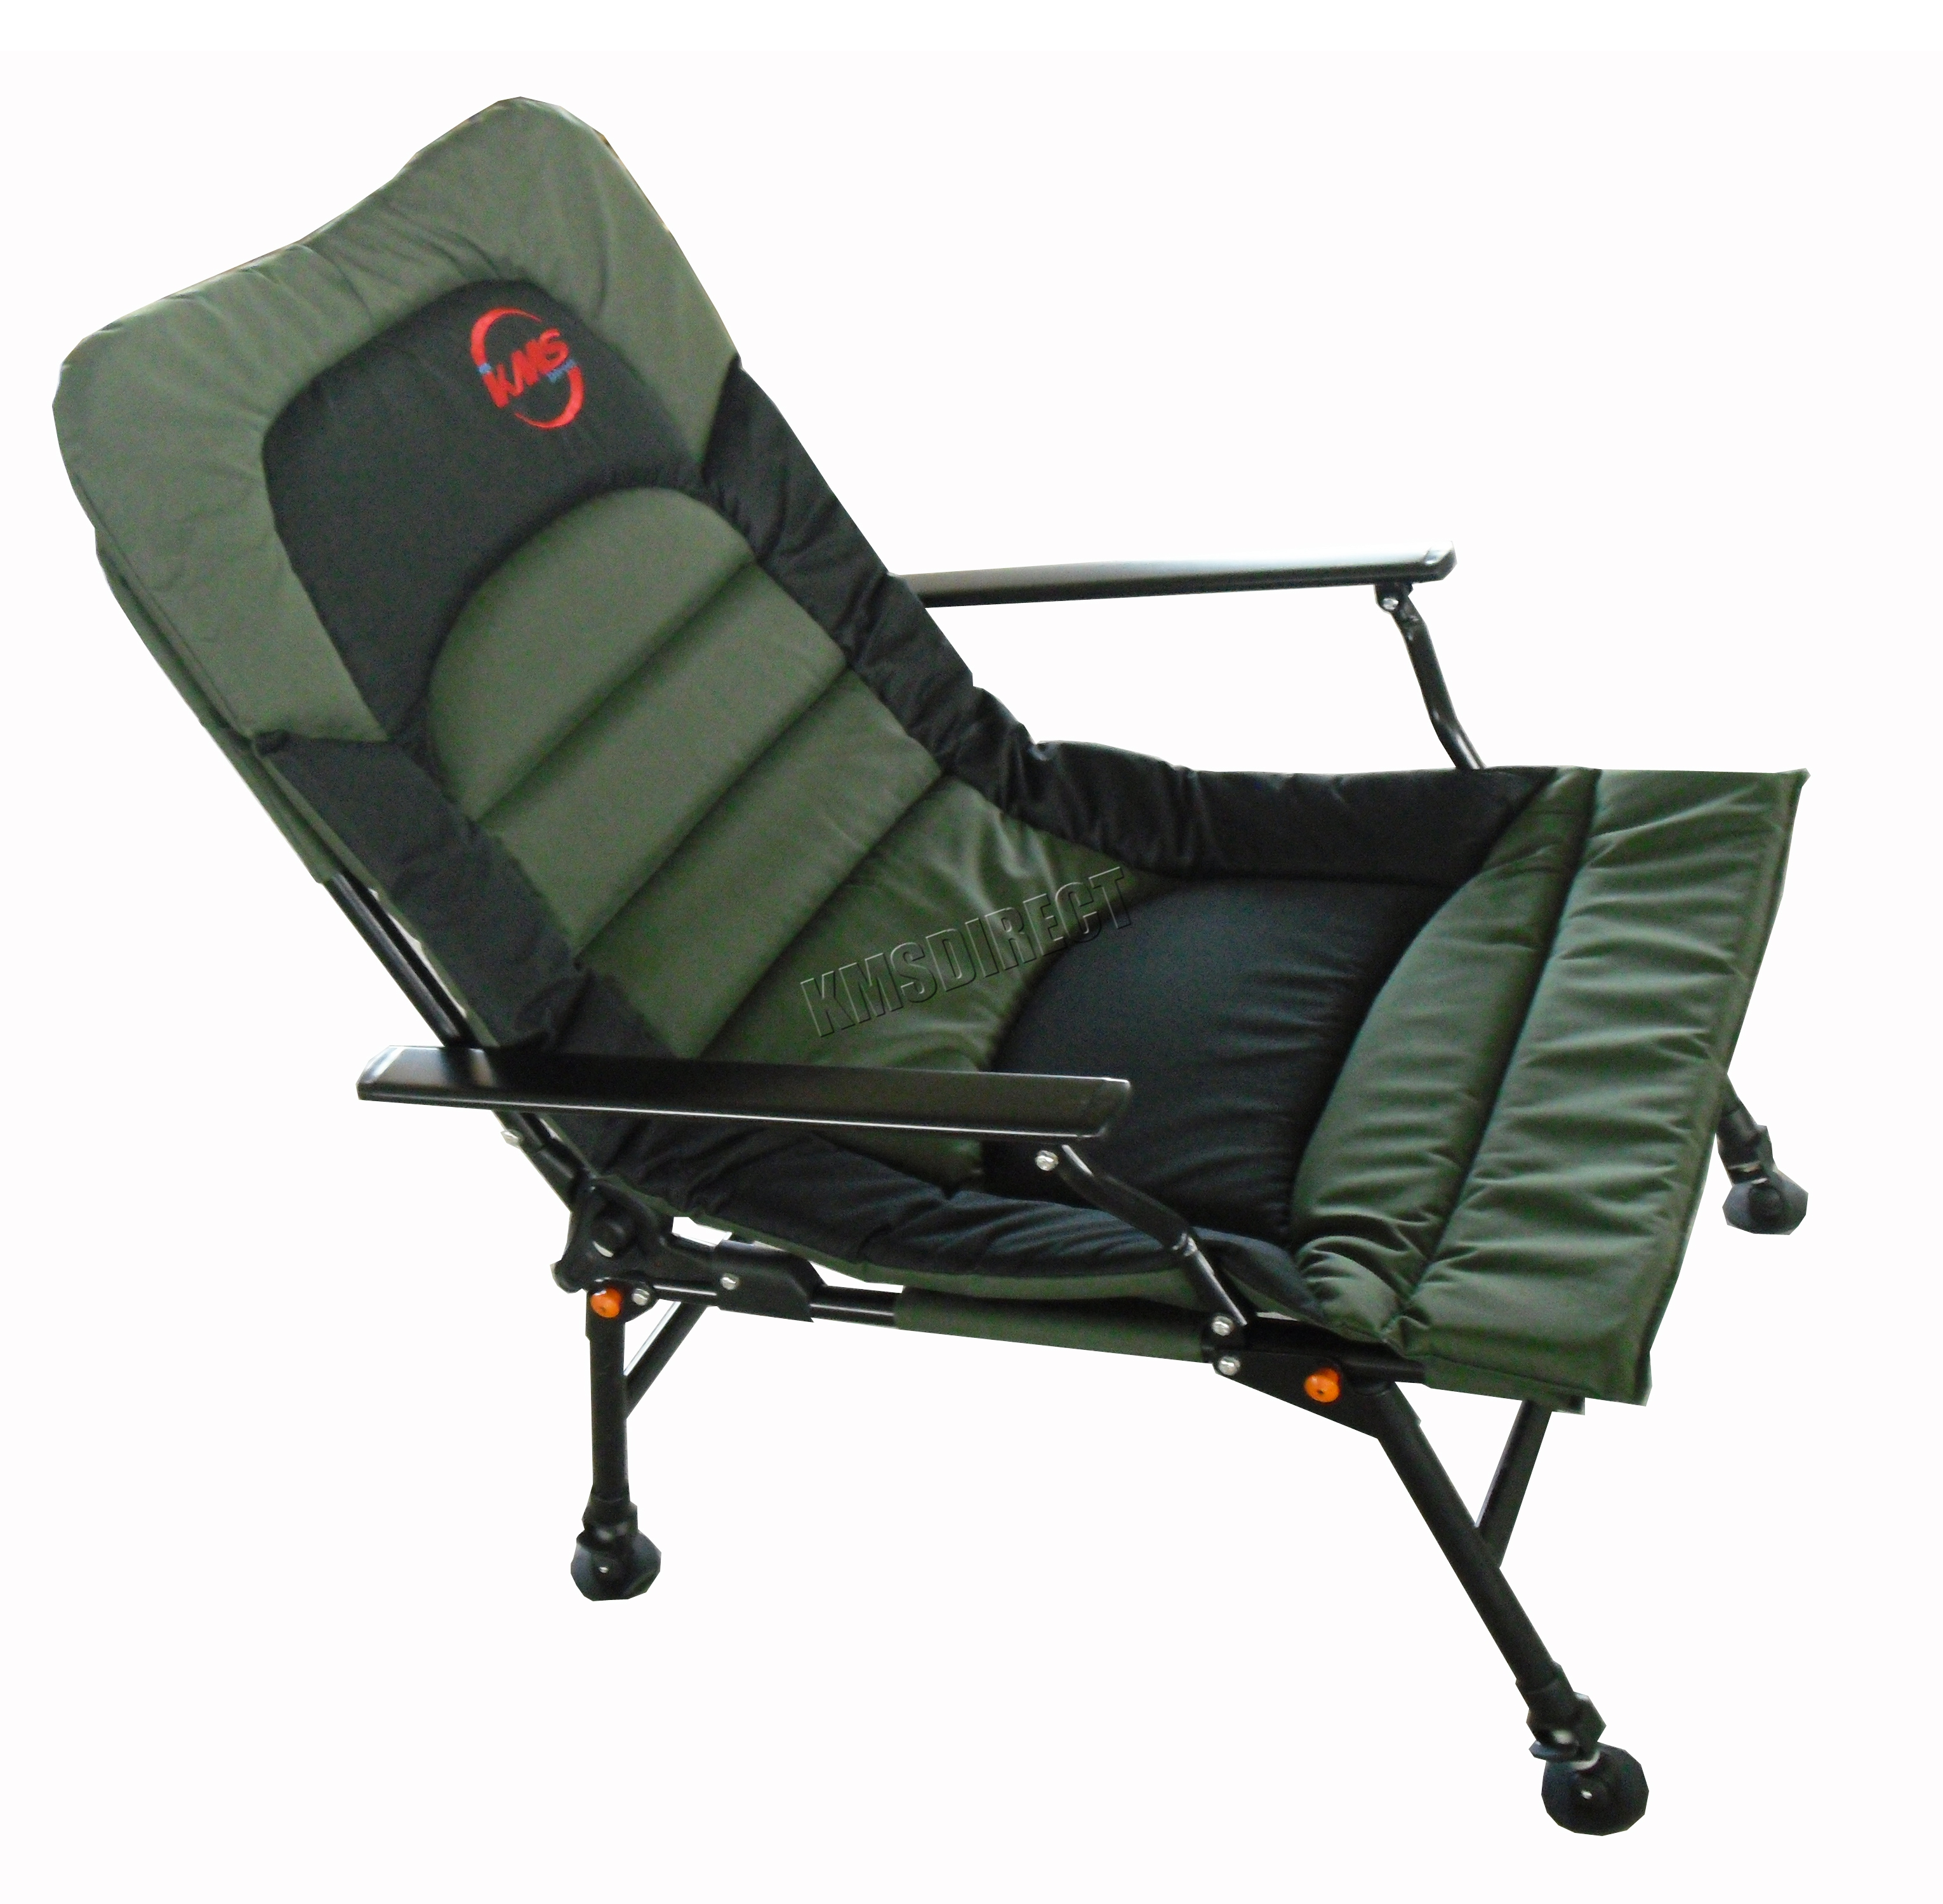 fishing chair no arms design miniature xl carp arm rests folding camping recliner 4